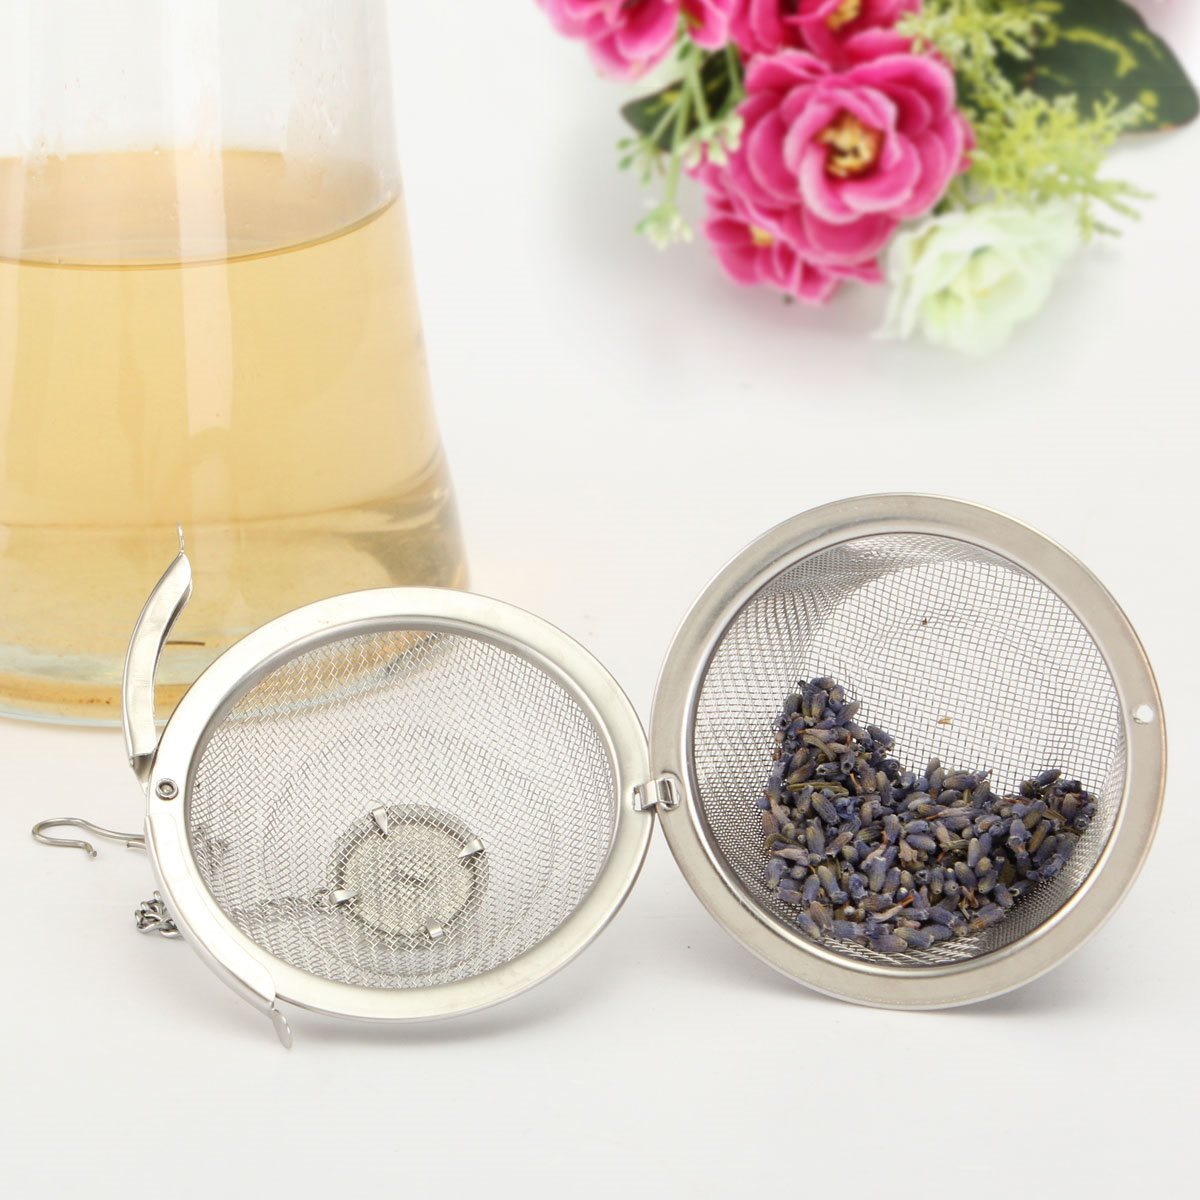 Durable 4.5cm Silver Reusable Stainless Mesh Herbal Ball Tea Spice Strainer Teakettle Locking Tea Filter Infuser Spice S Size